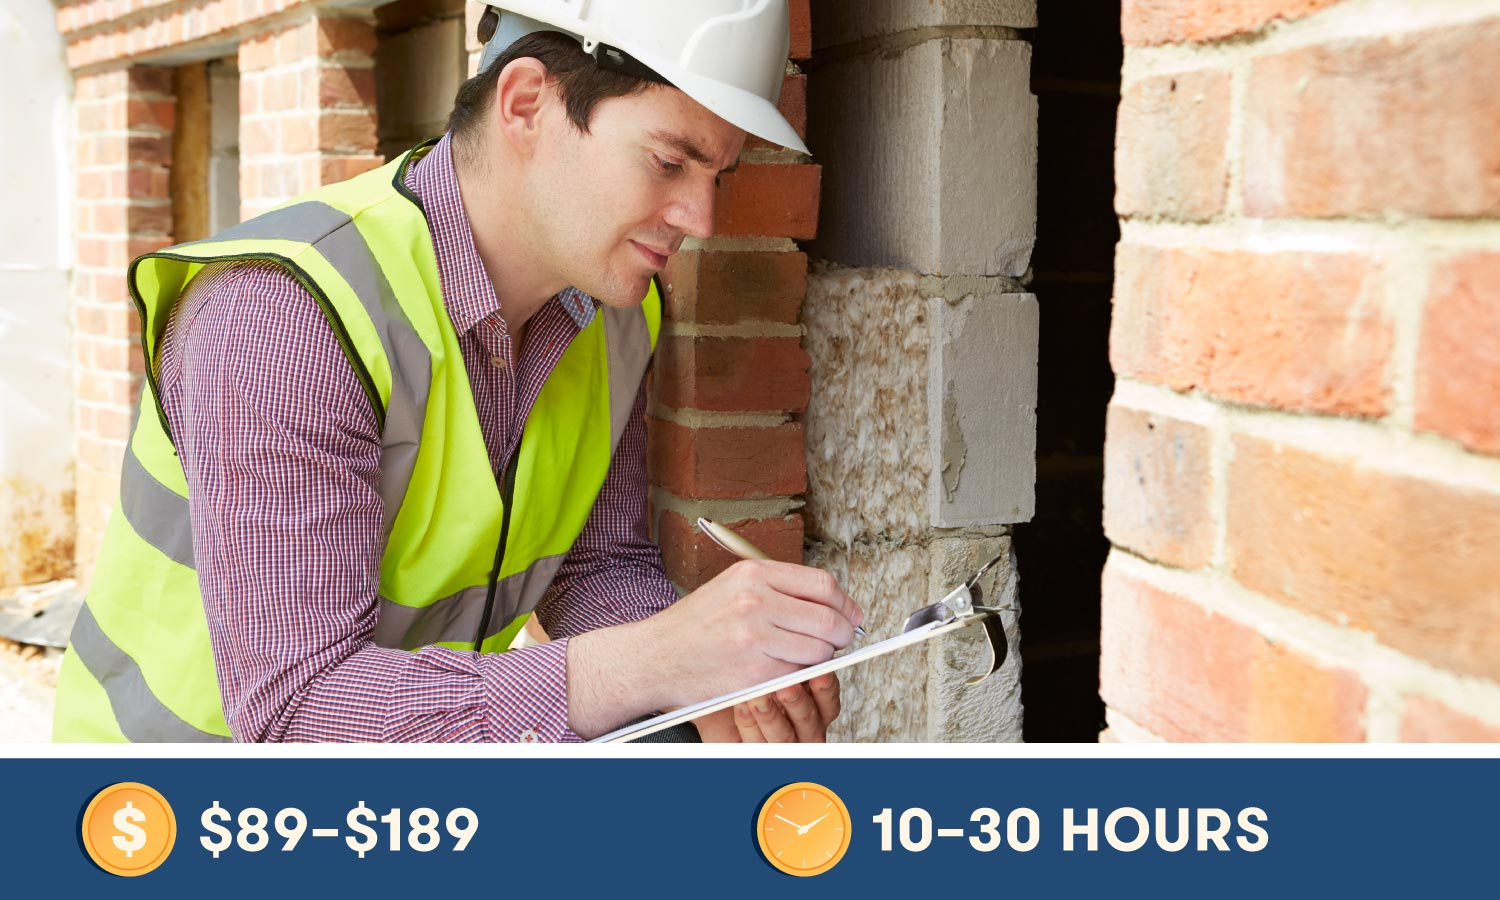 OSHA Training cost $89-$189 and 10-30 Hours